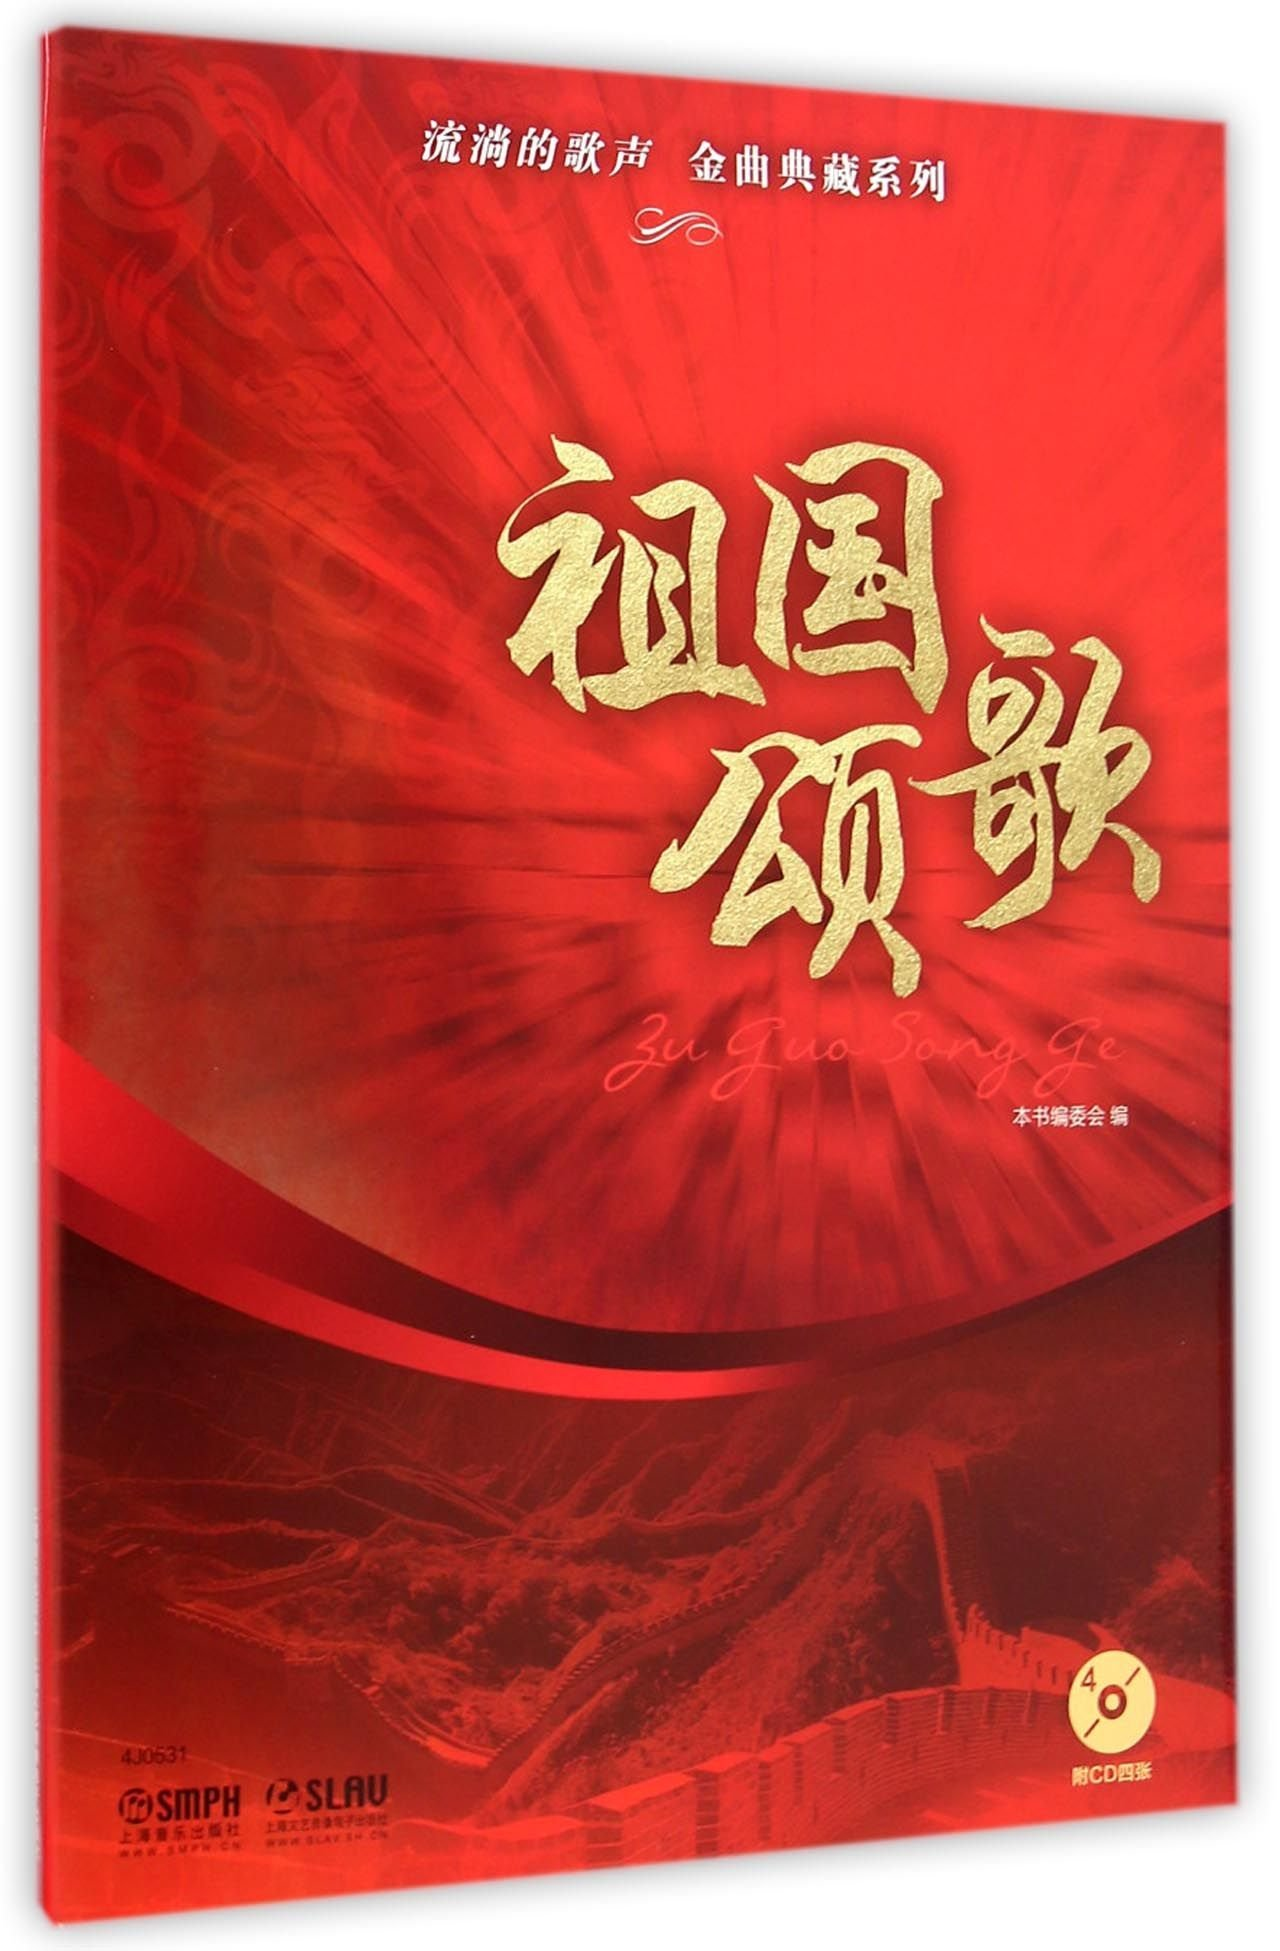 Download Flowing singing songs Collection - motherland carols with CD four(Chinese Edition) PDF